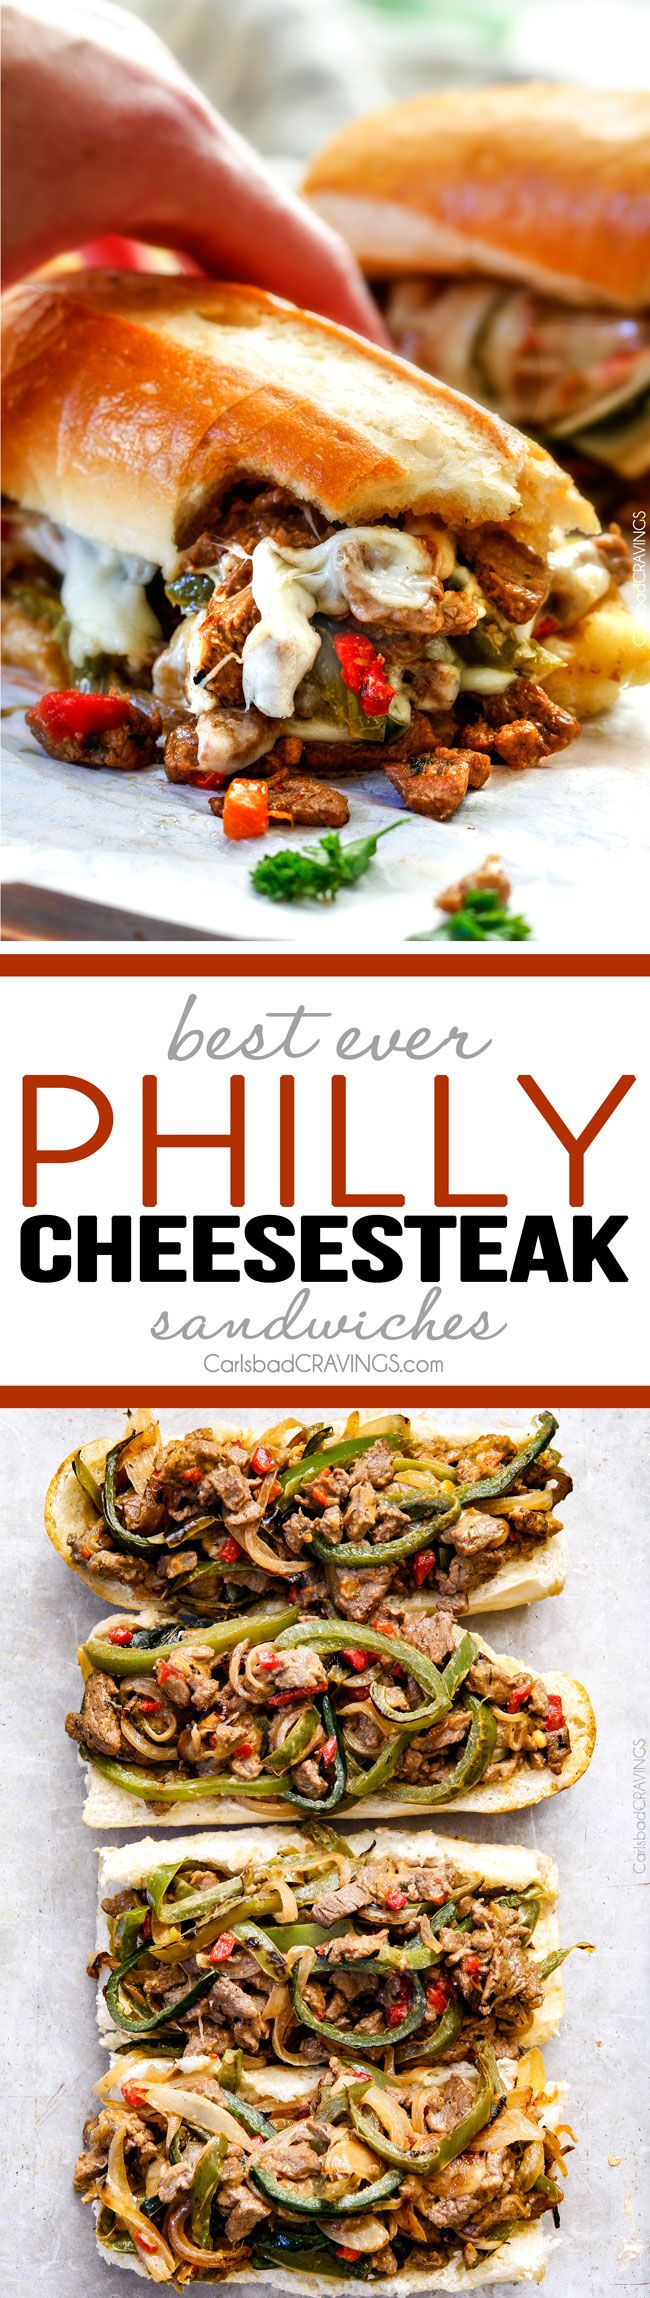 Philly Cheesesteak Sandwiches